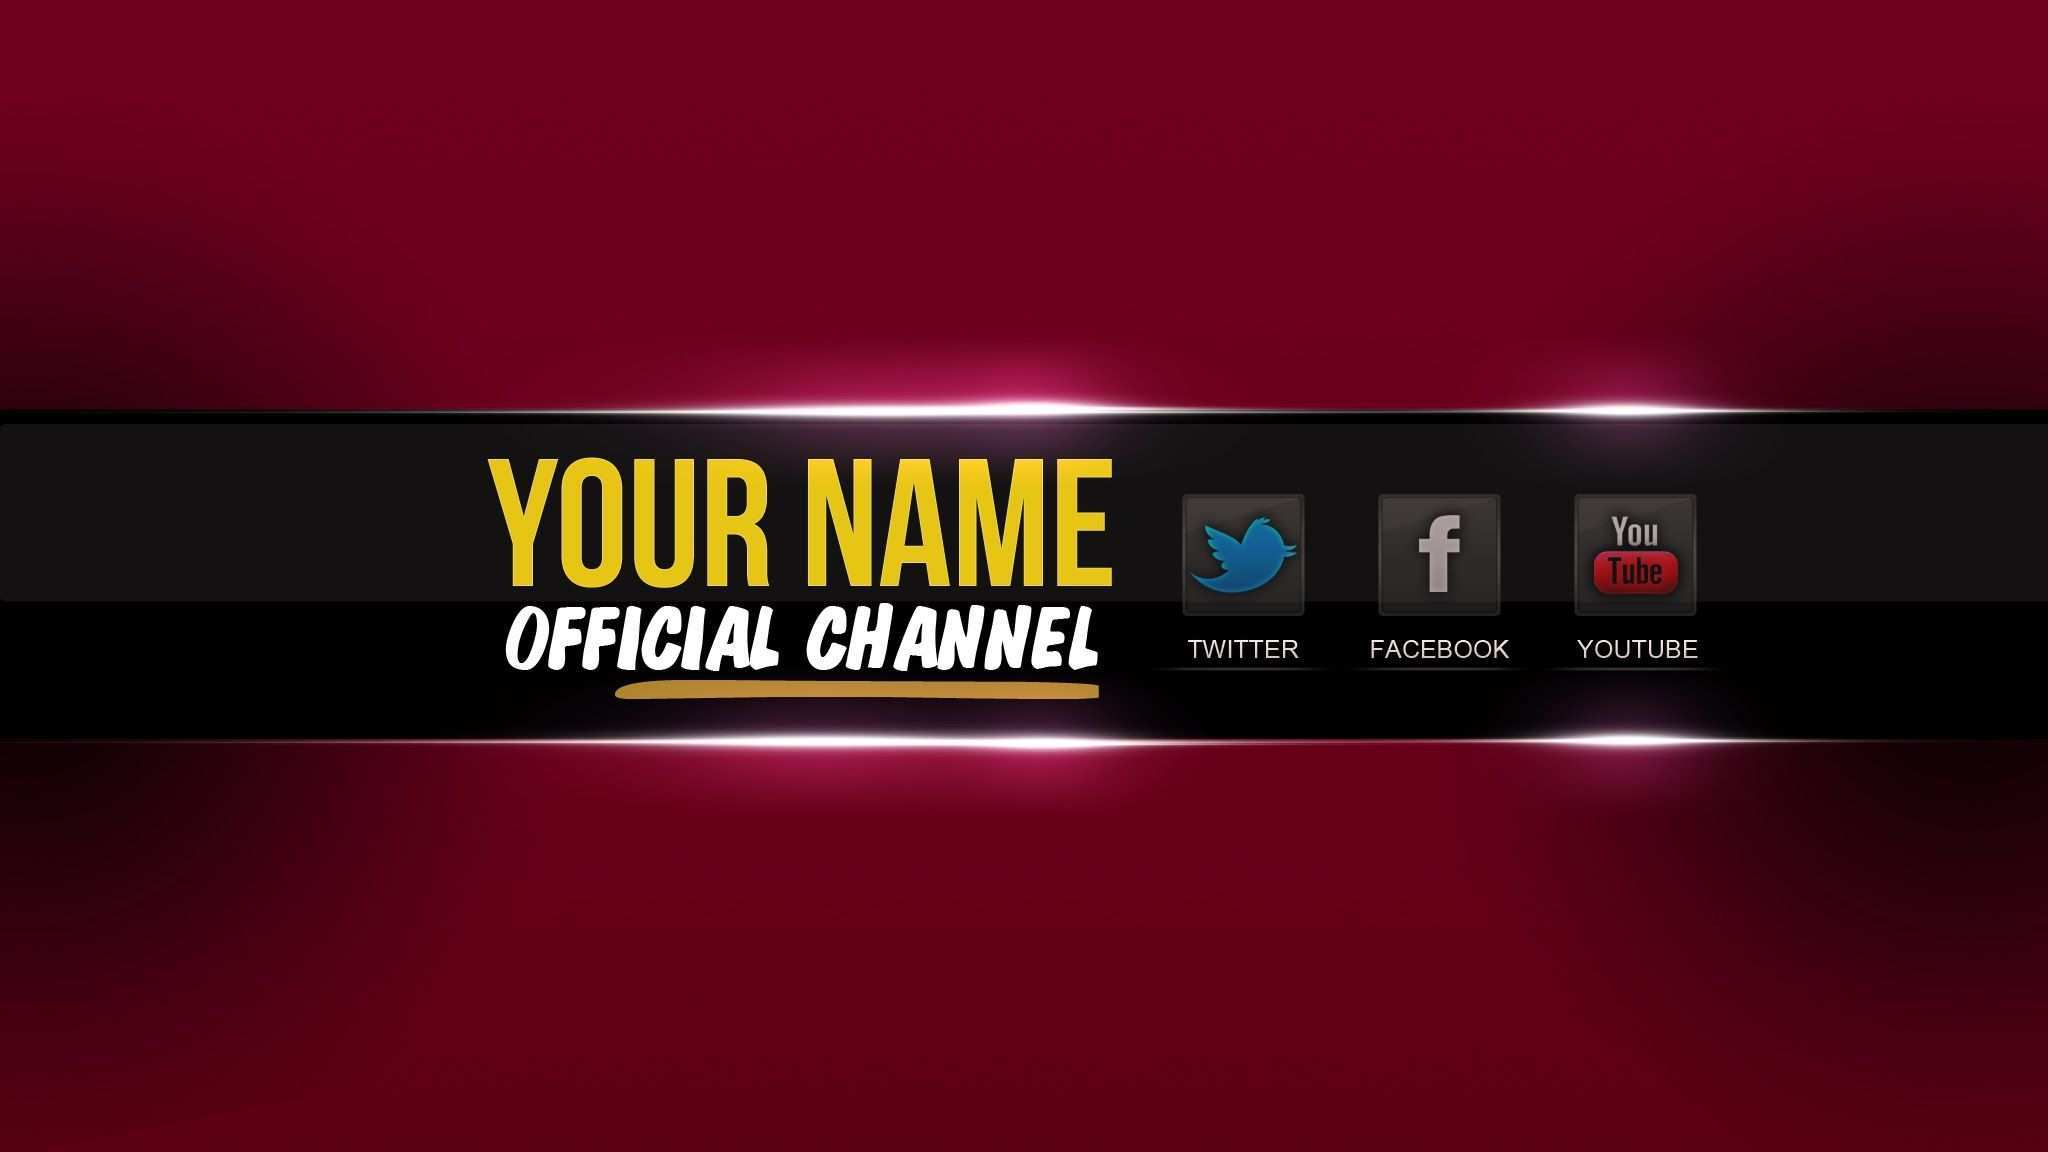 Youtube Banners Youtube Banner Template Youtube Banners Youtube Banner Backgrounds